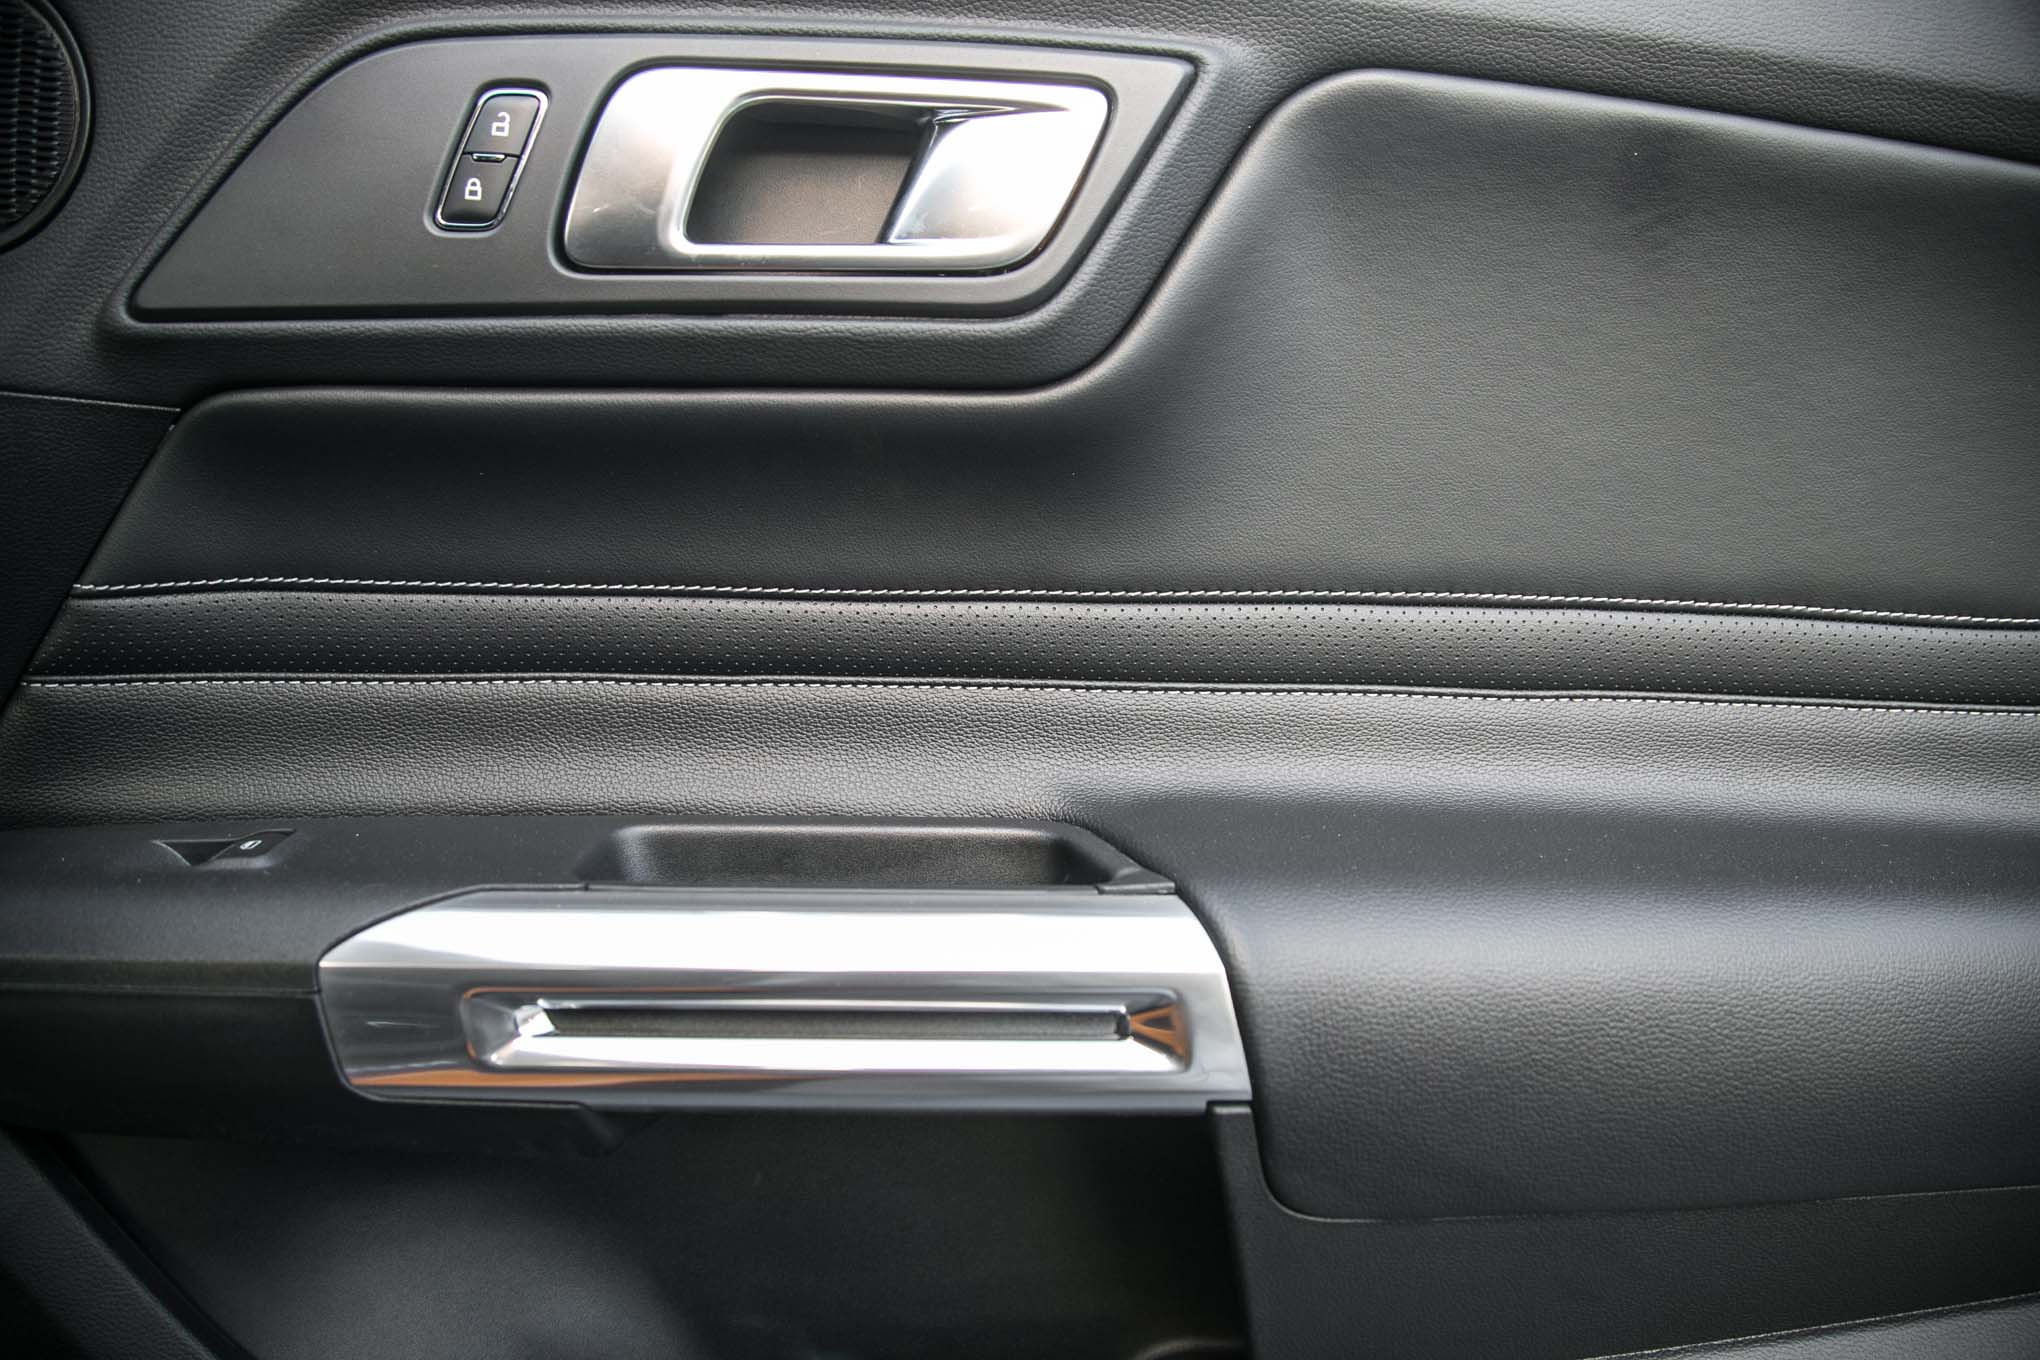 2018-Ford-Mustang-GT-V8-Performance-Pack-interior-door-panel